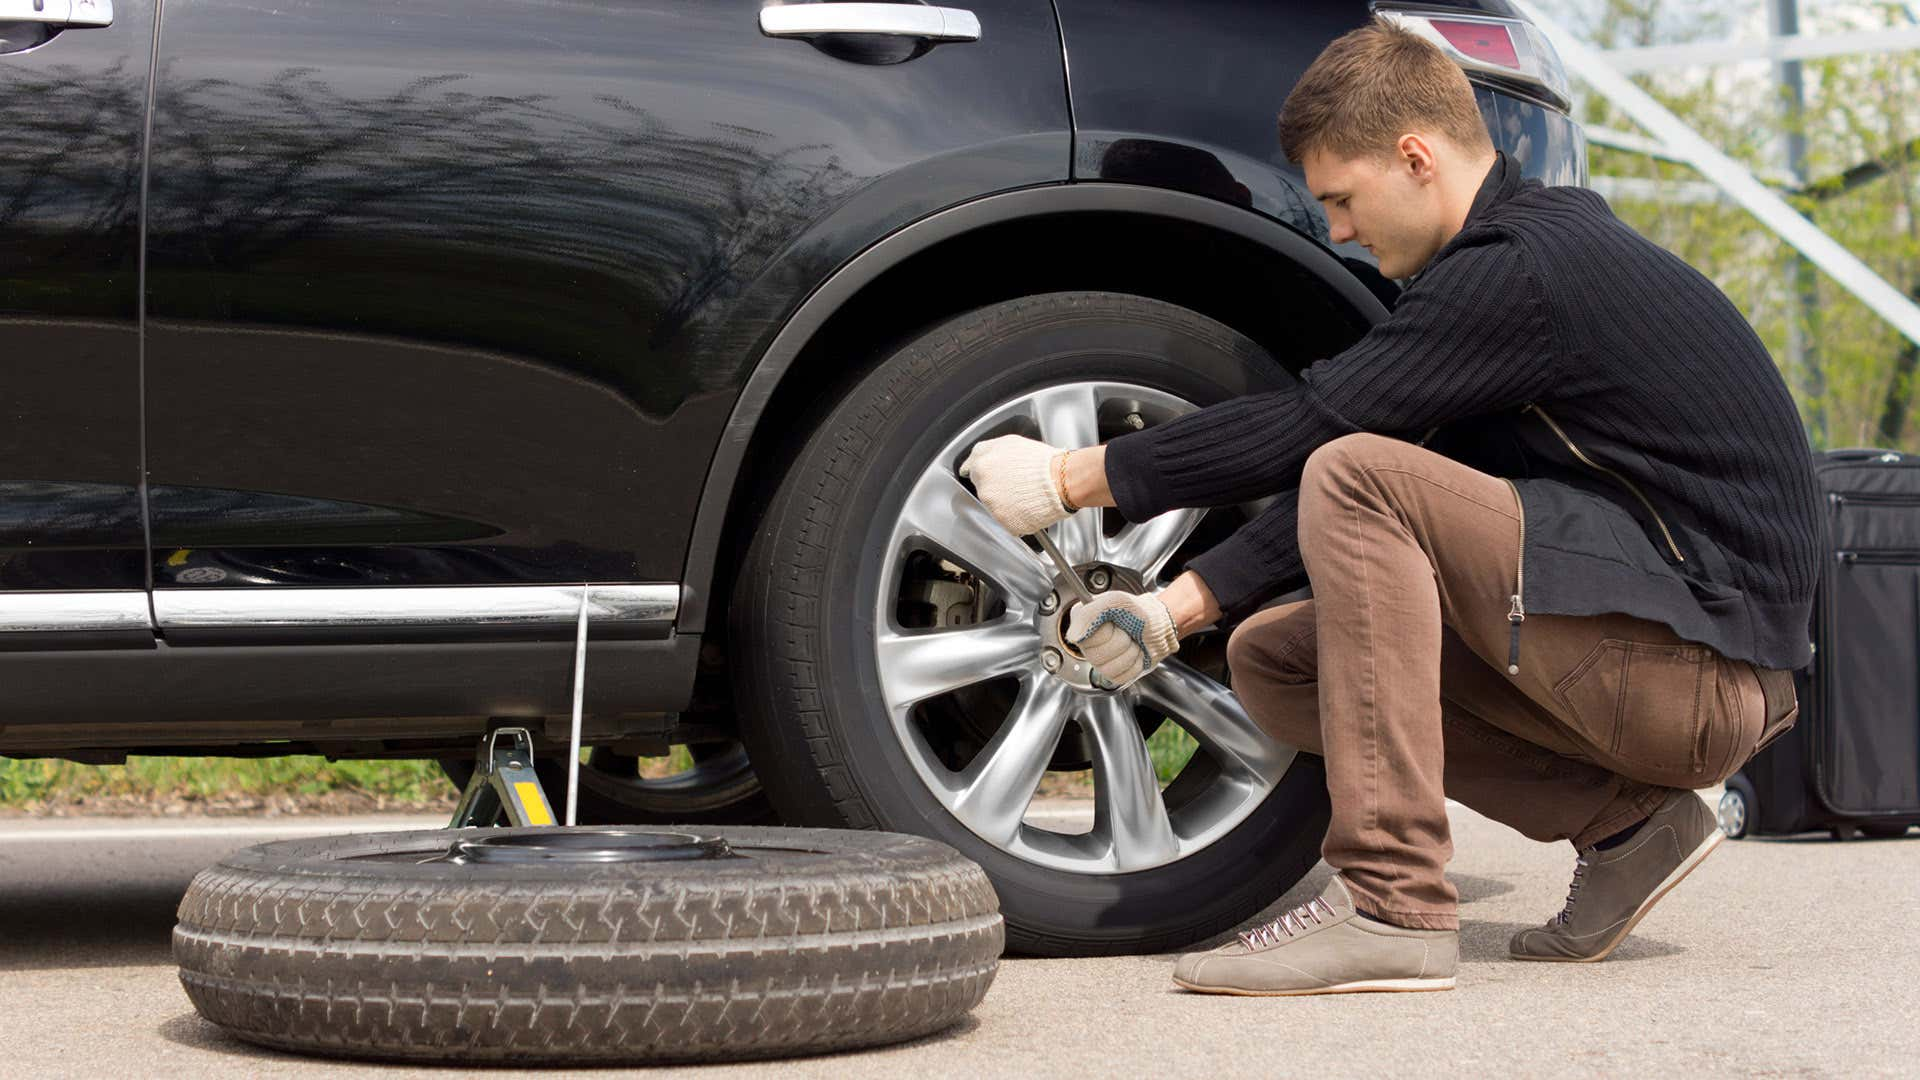 A man wrenches on lug nuts before installing a spare tire.